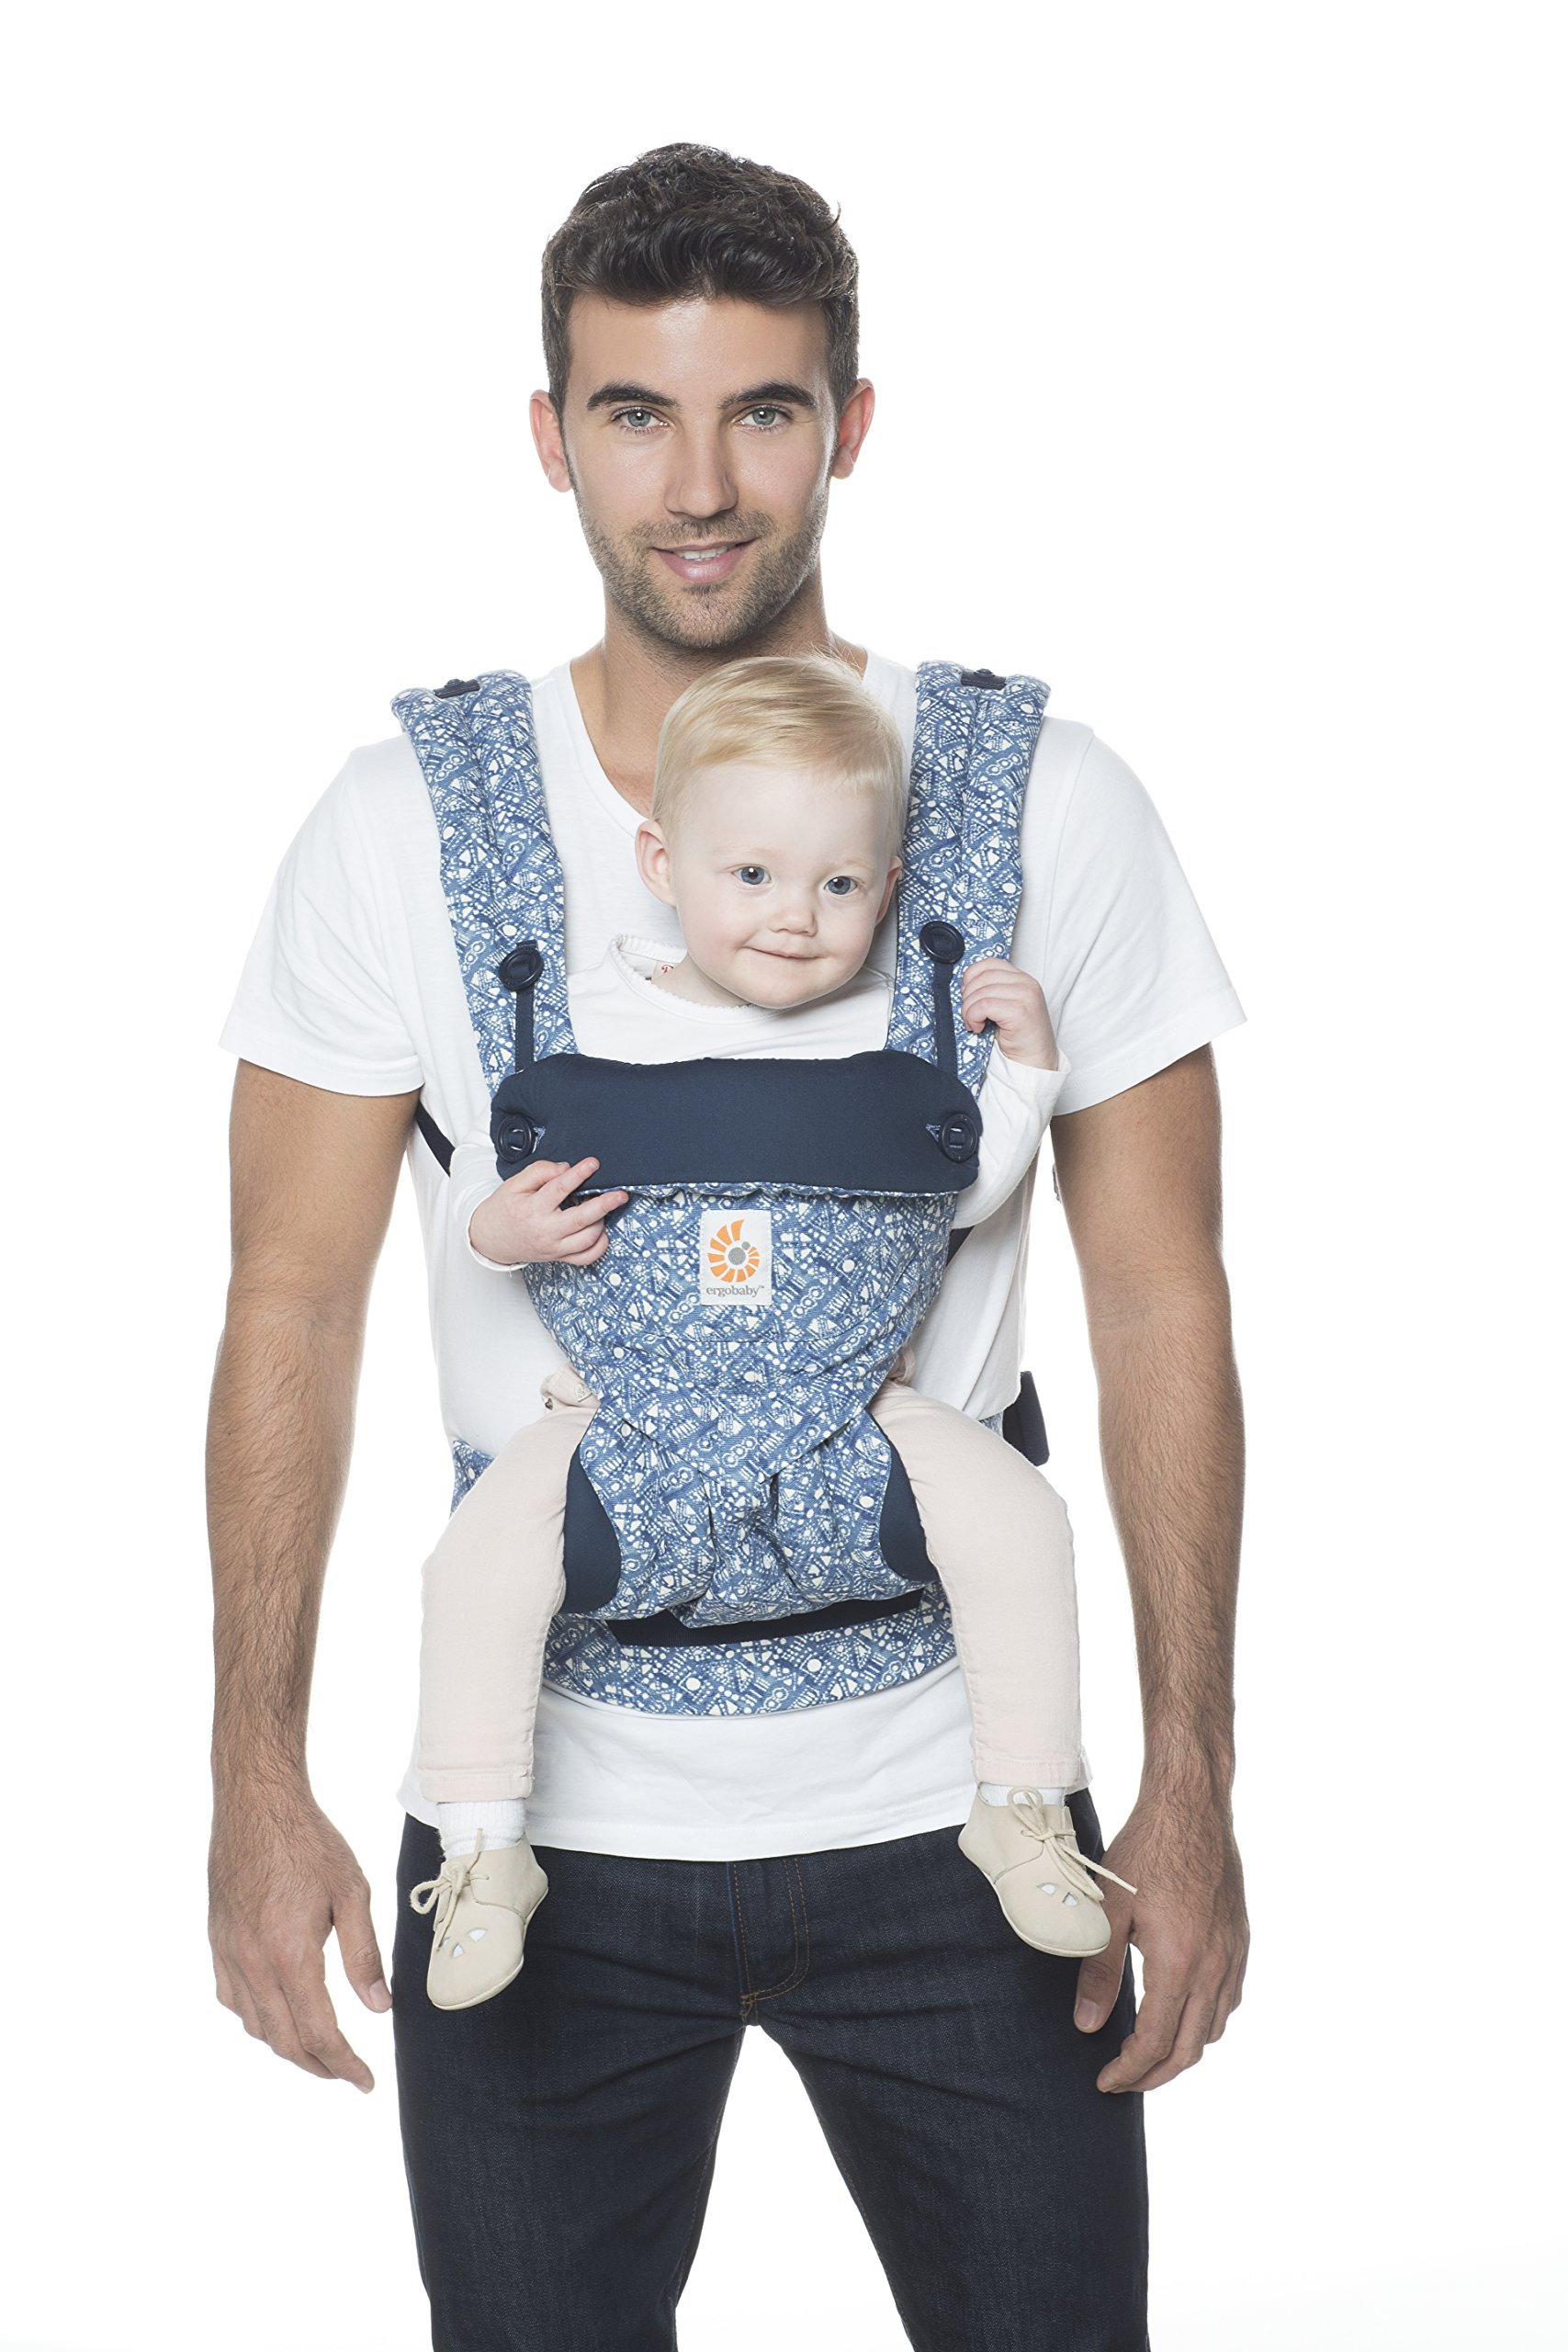 Ergobaby Baby Carrier 6 month plus 360 Limited Edition Batik Indigo, 4 Ergonomic Carry Positions, Front Facing Baby Carrier, Backpack Ergobaby Ergonomic baby carrier with 4 ergonomic carry positions: front-inward, back, hip, and front-outward. The carrier is suitable for babies and toddlers weighing 5.5-20 kg (12-45 lbs), and can be used as a back carrier. Also with insert for newborn babies weighing 3.2-5.5 kg (7-12 lbs), sold separately. NEW - The waistbelt with lumbar support can be worn a little higher or lower to support the lower back and provide optimal comfort, and has adjustable padded shoulder straps. The carrier is suitable for men and women. Maximum baby comfort - The structured bucket seat supports the correct frog-leg position for the baby. The carrier also has a padded, foldable head and neck support. Ergobaby carriers are a new take on the usual baby sling. 3